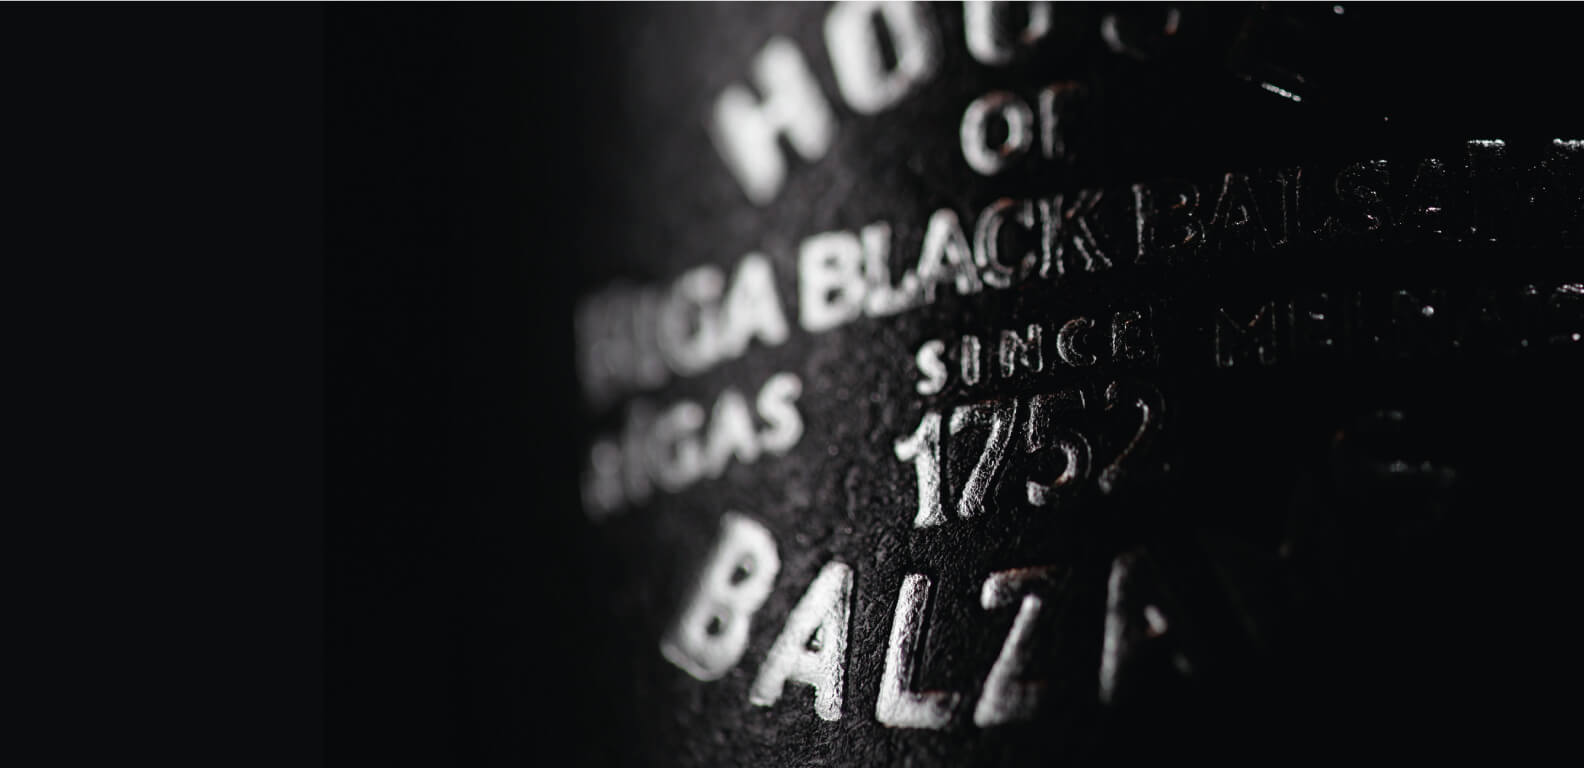 Riga Black Vodka - label design